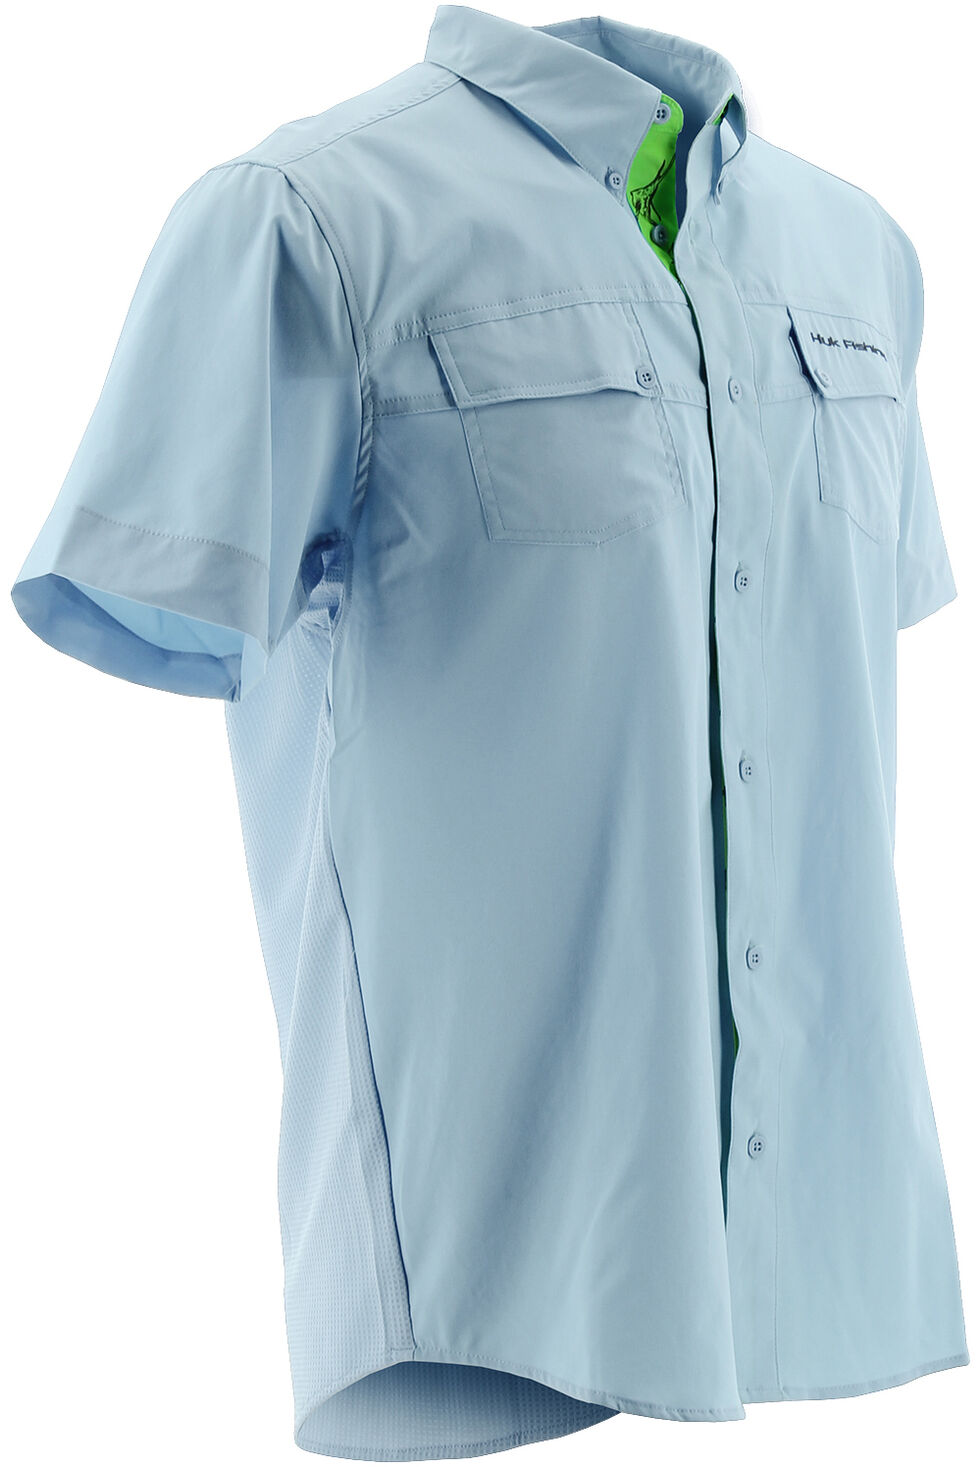 Huk Performance Fishing Men's Phenom Short Sleeve Shirt , Light Blue, hi-res